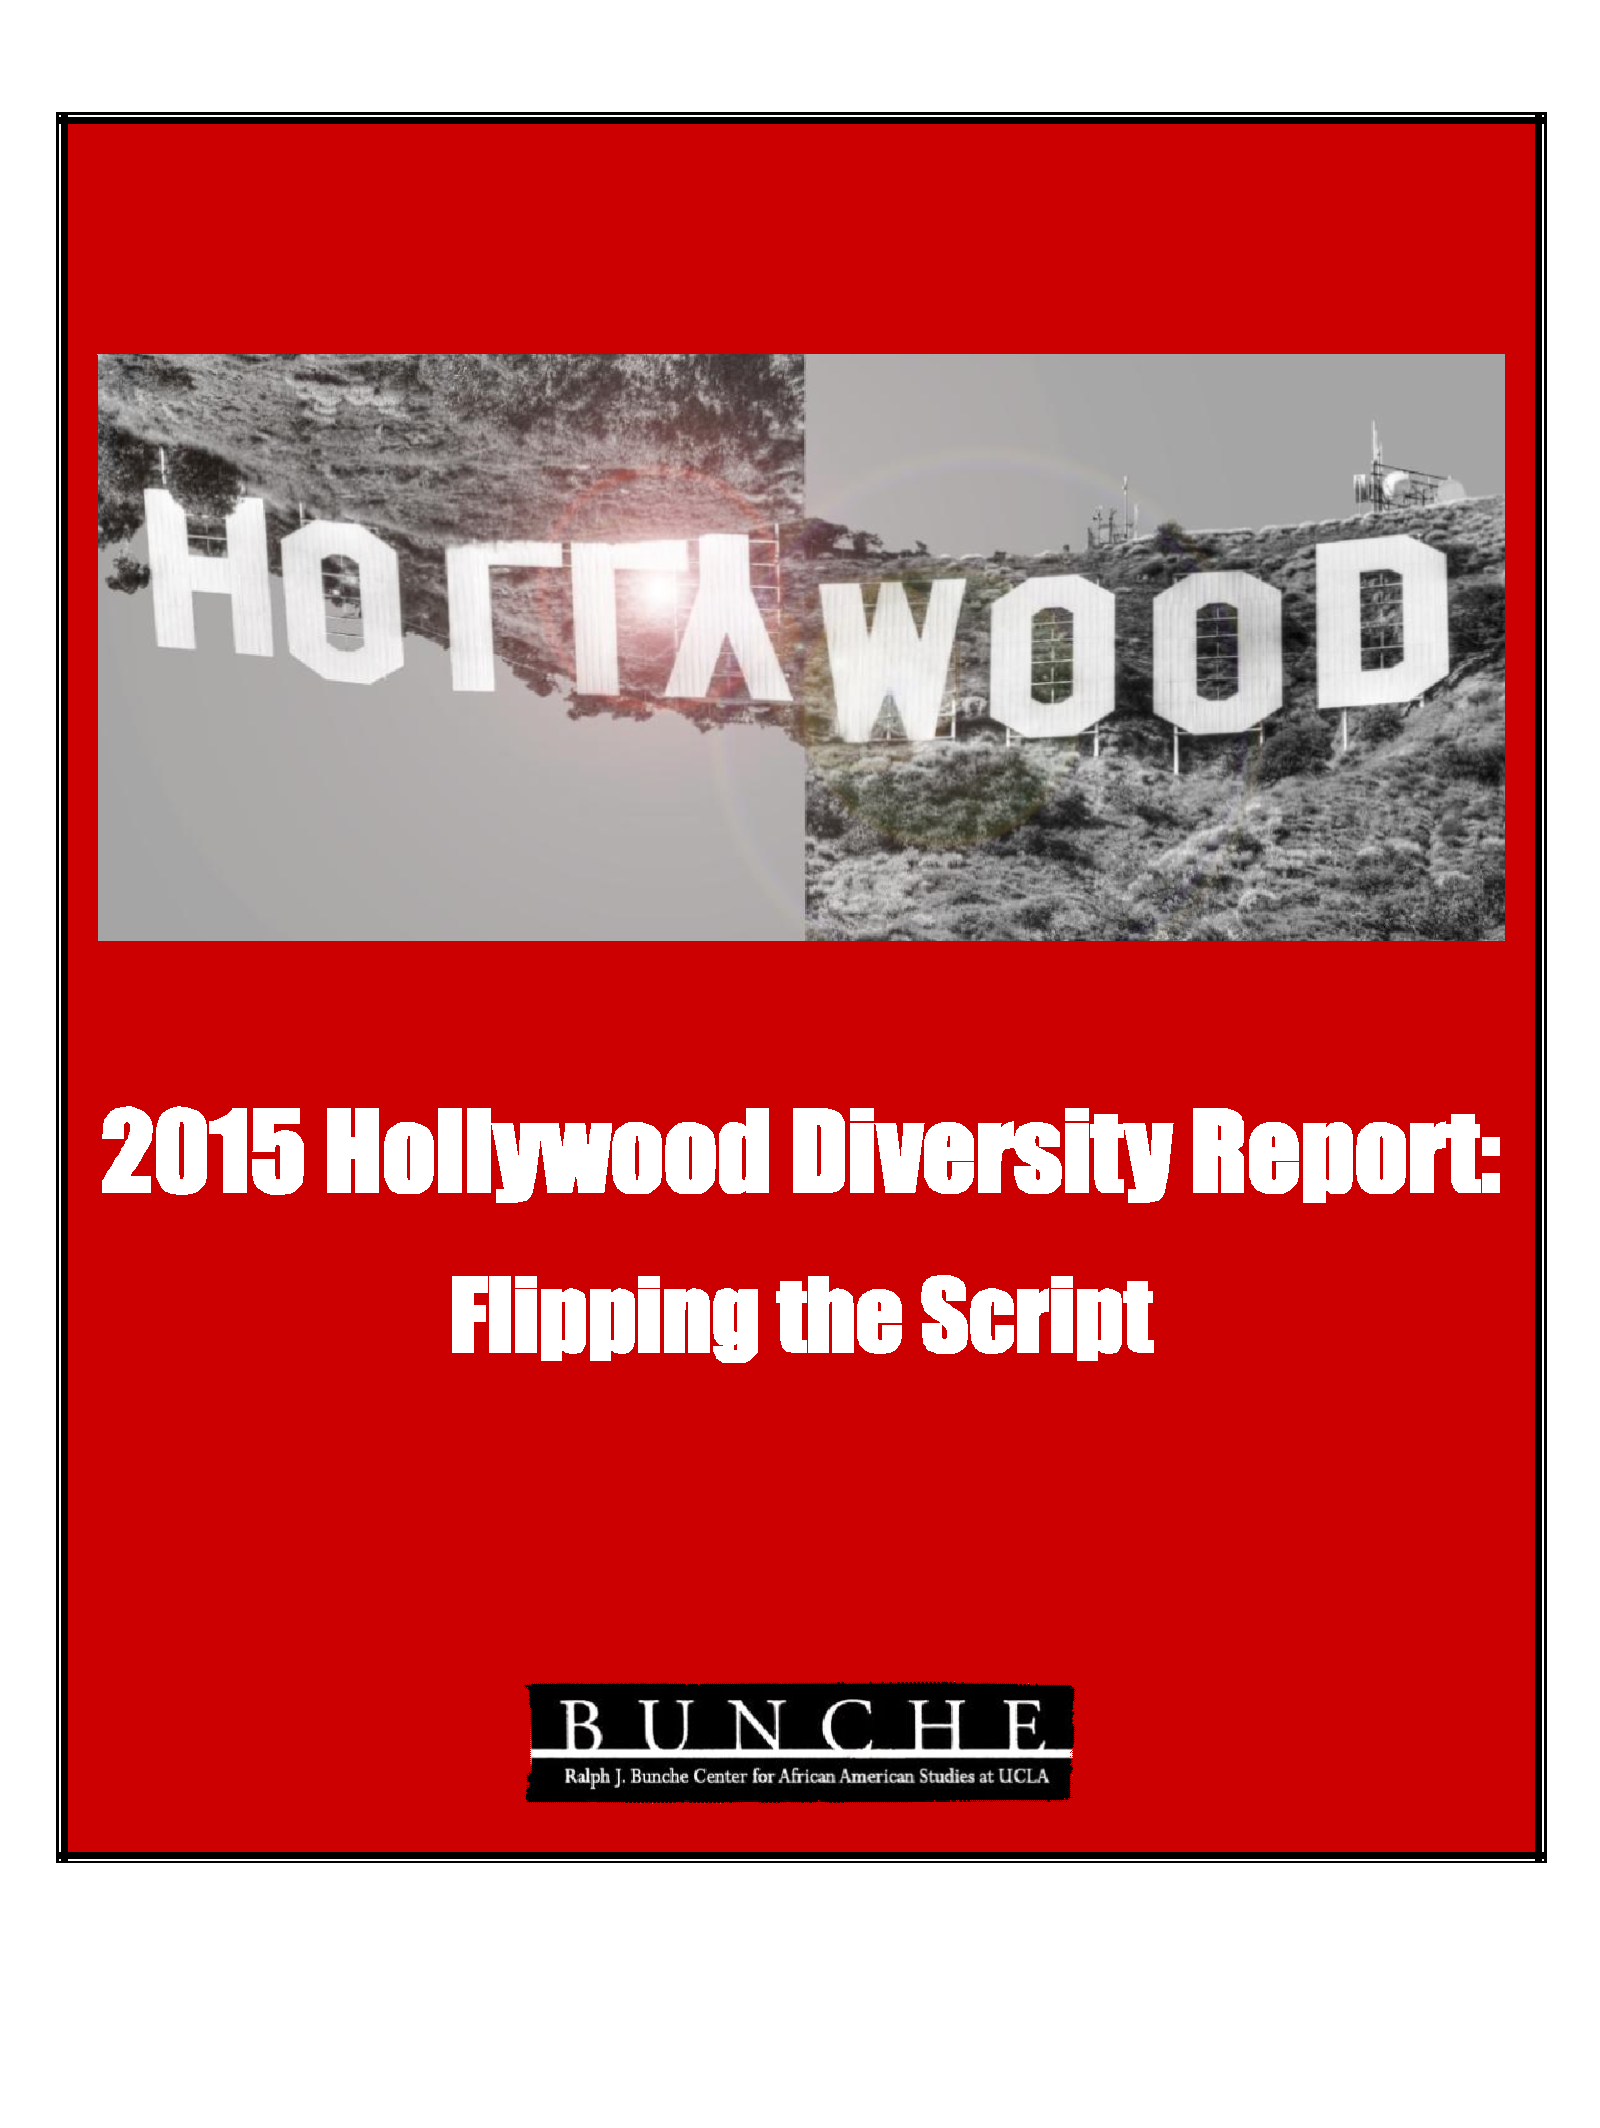 Hollywod Diversiry Report